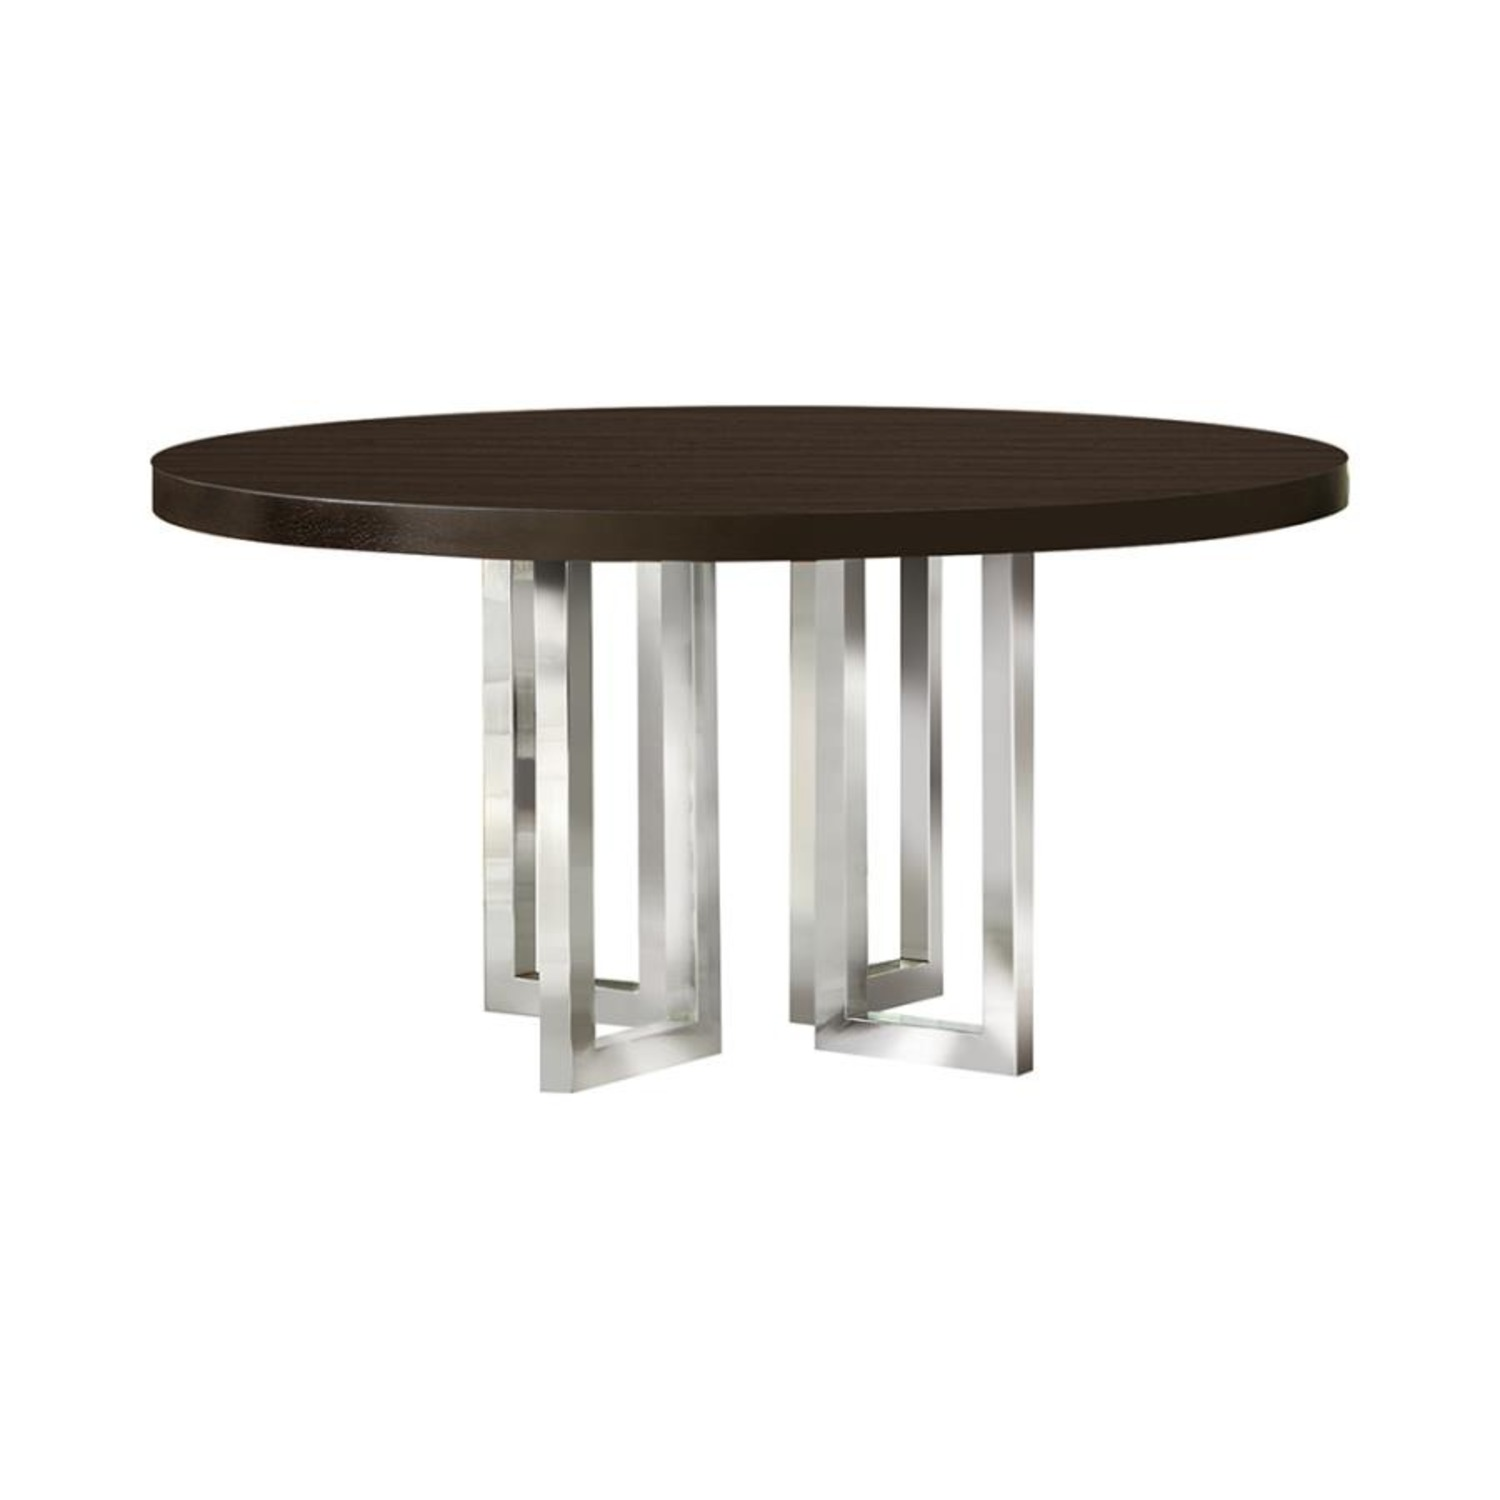 Modern Round Dining Table In Graphite Wood Finish - image-1